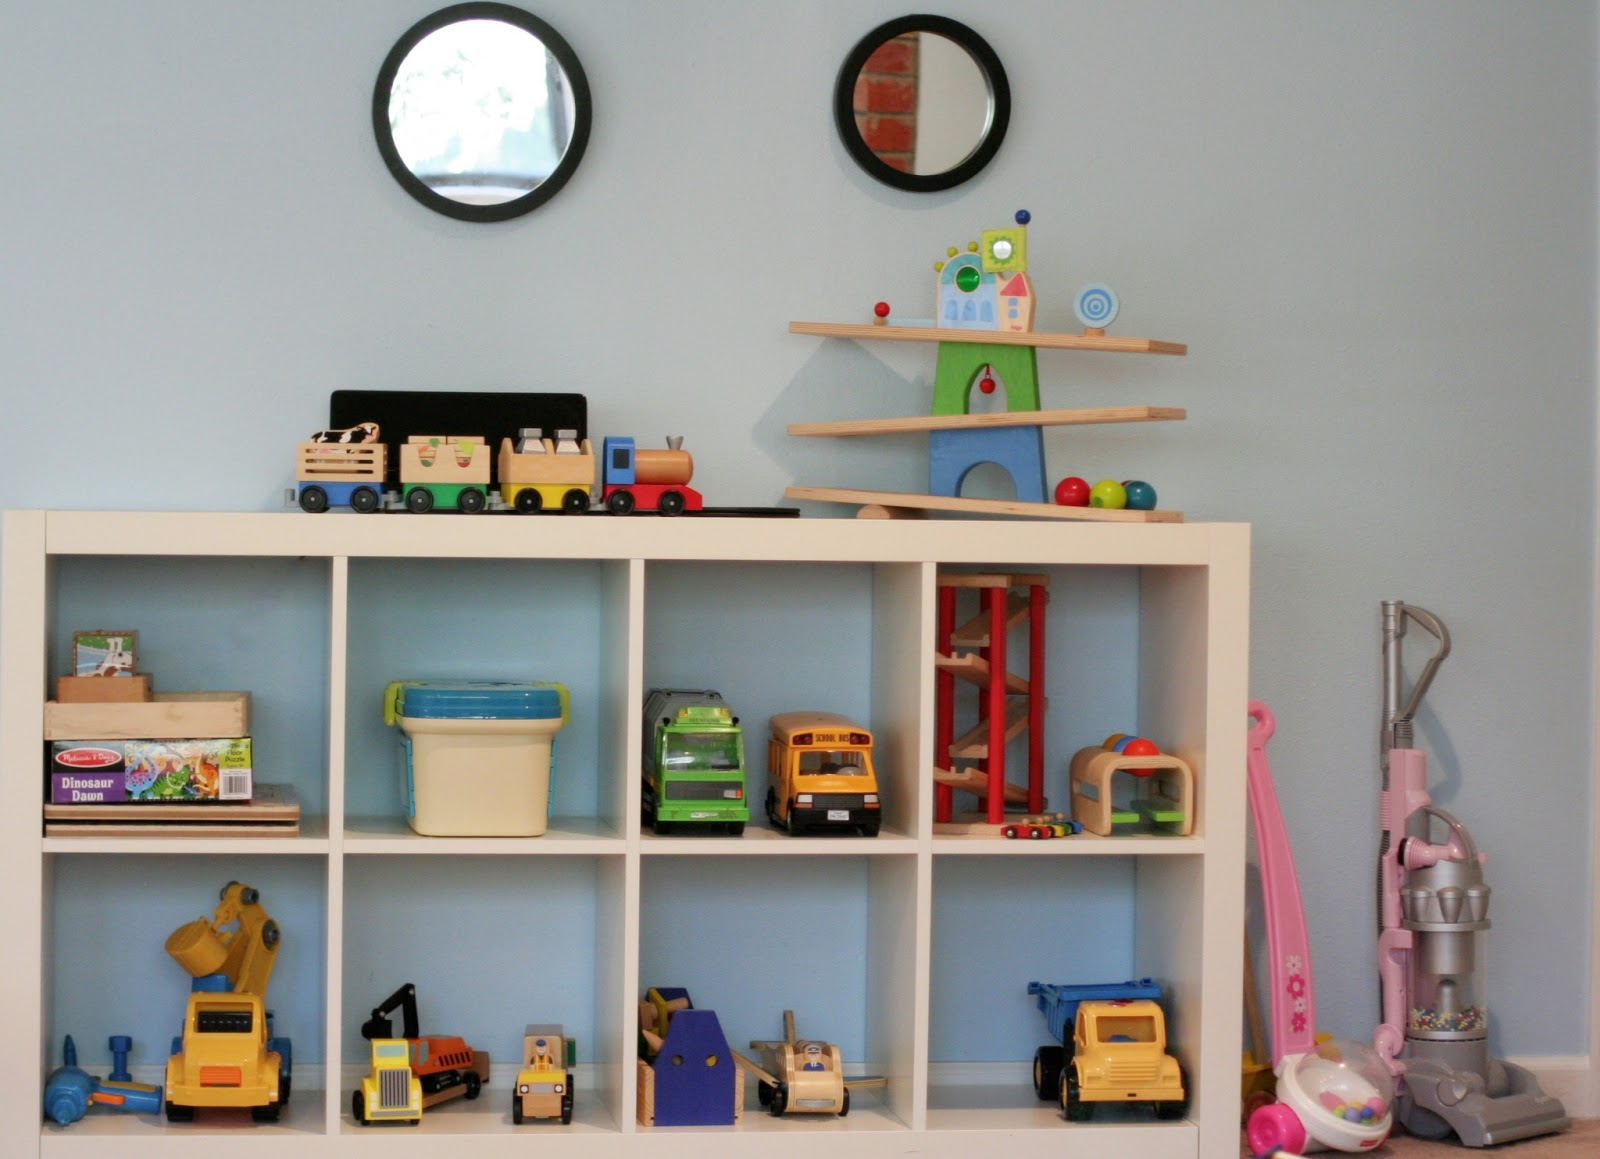 Kids Room With Toys playroom design: diy playroom with rock wall